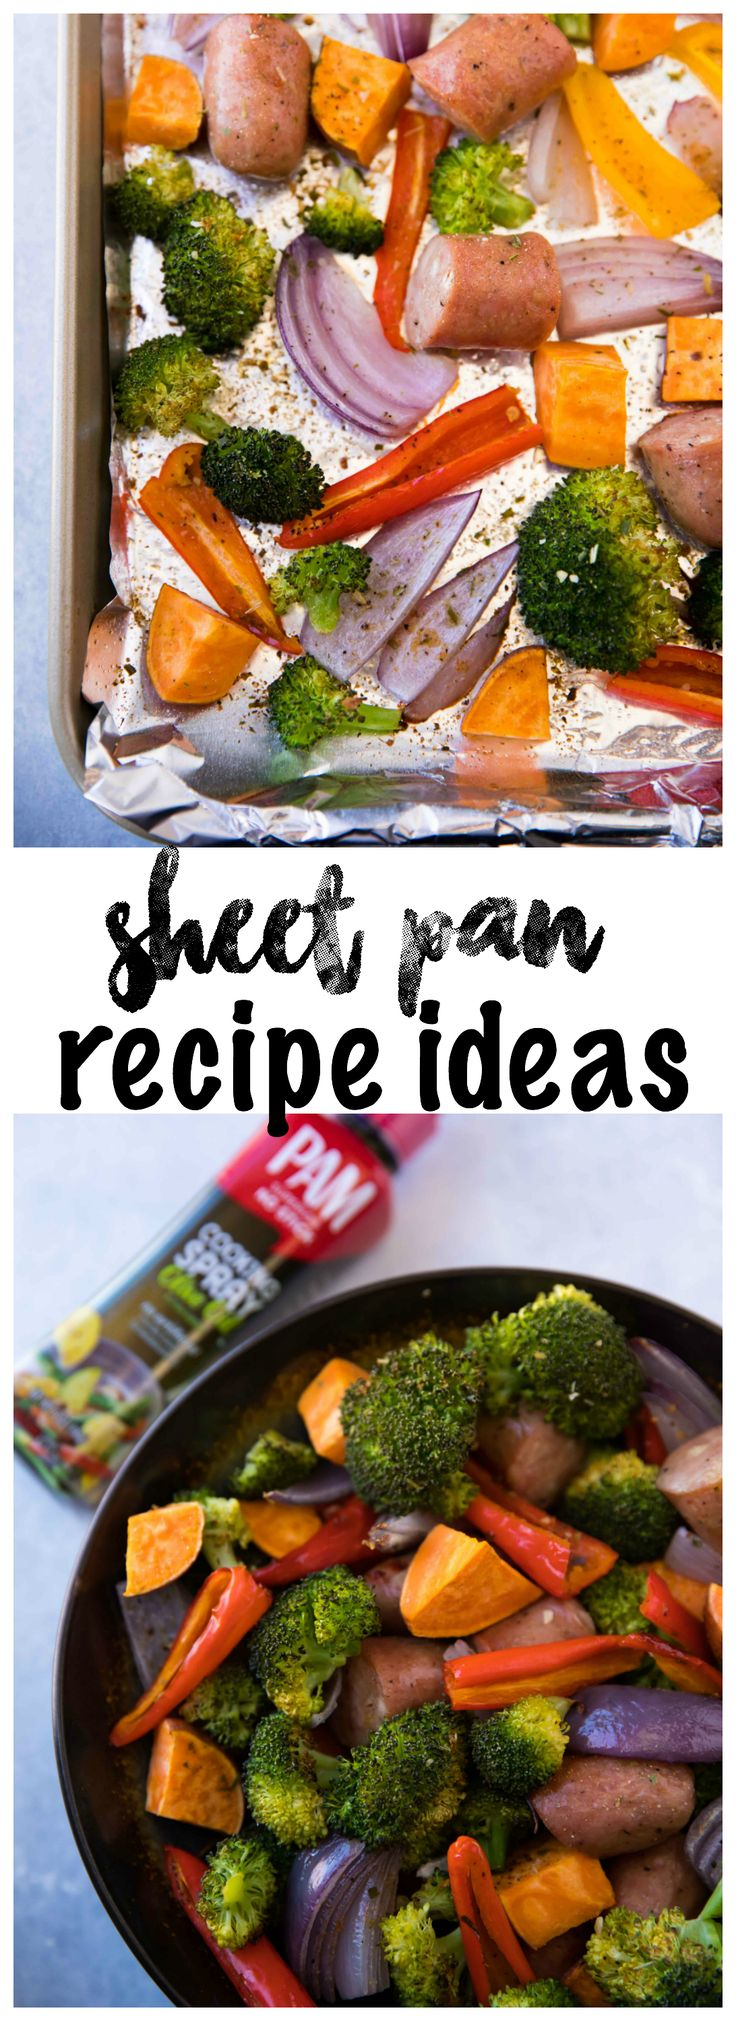 These Best EVER Sheet Pan Recipe Ideas are easy, fast, made in just one pan and the choices are endless. These recipe ideas also make for the perfect meal prep options and/or weeknight dinners! AD #YouPAMDoIt #PAMInControl https://www.kimscravings.com/best-sheet-pan-recipe-ideas/